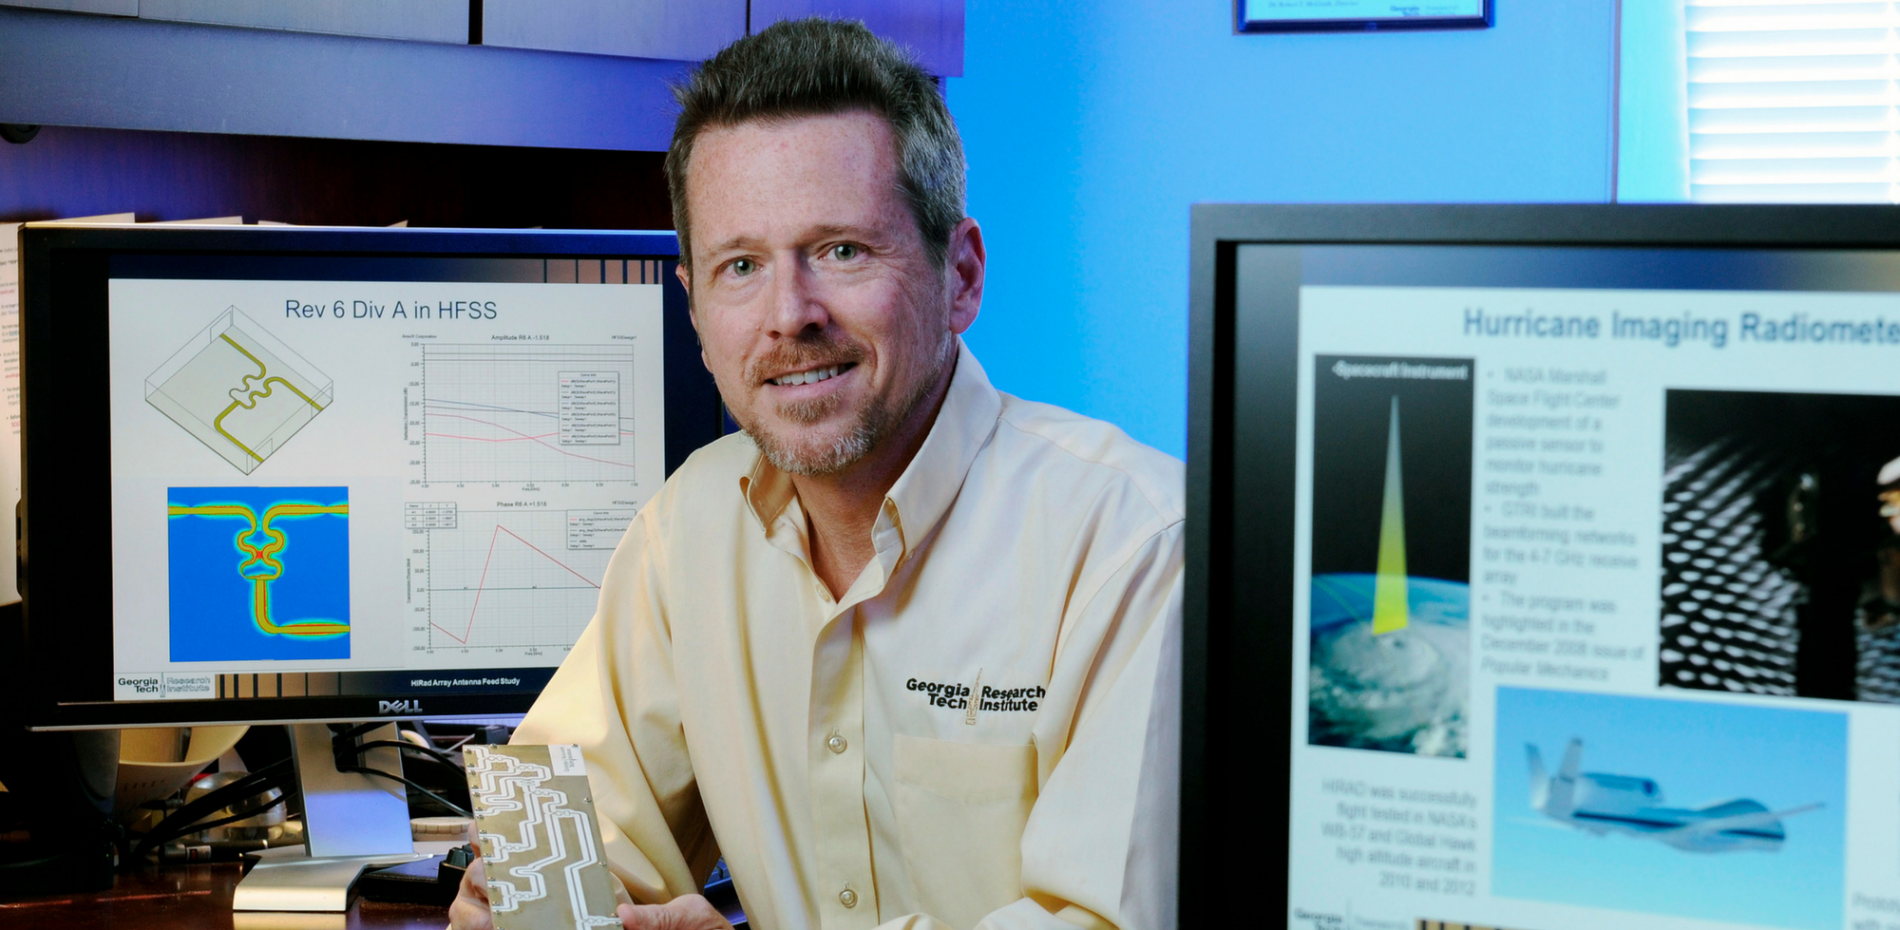 Glenn Hopkins next to computer screens displaying research